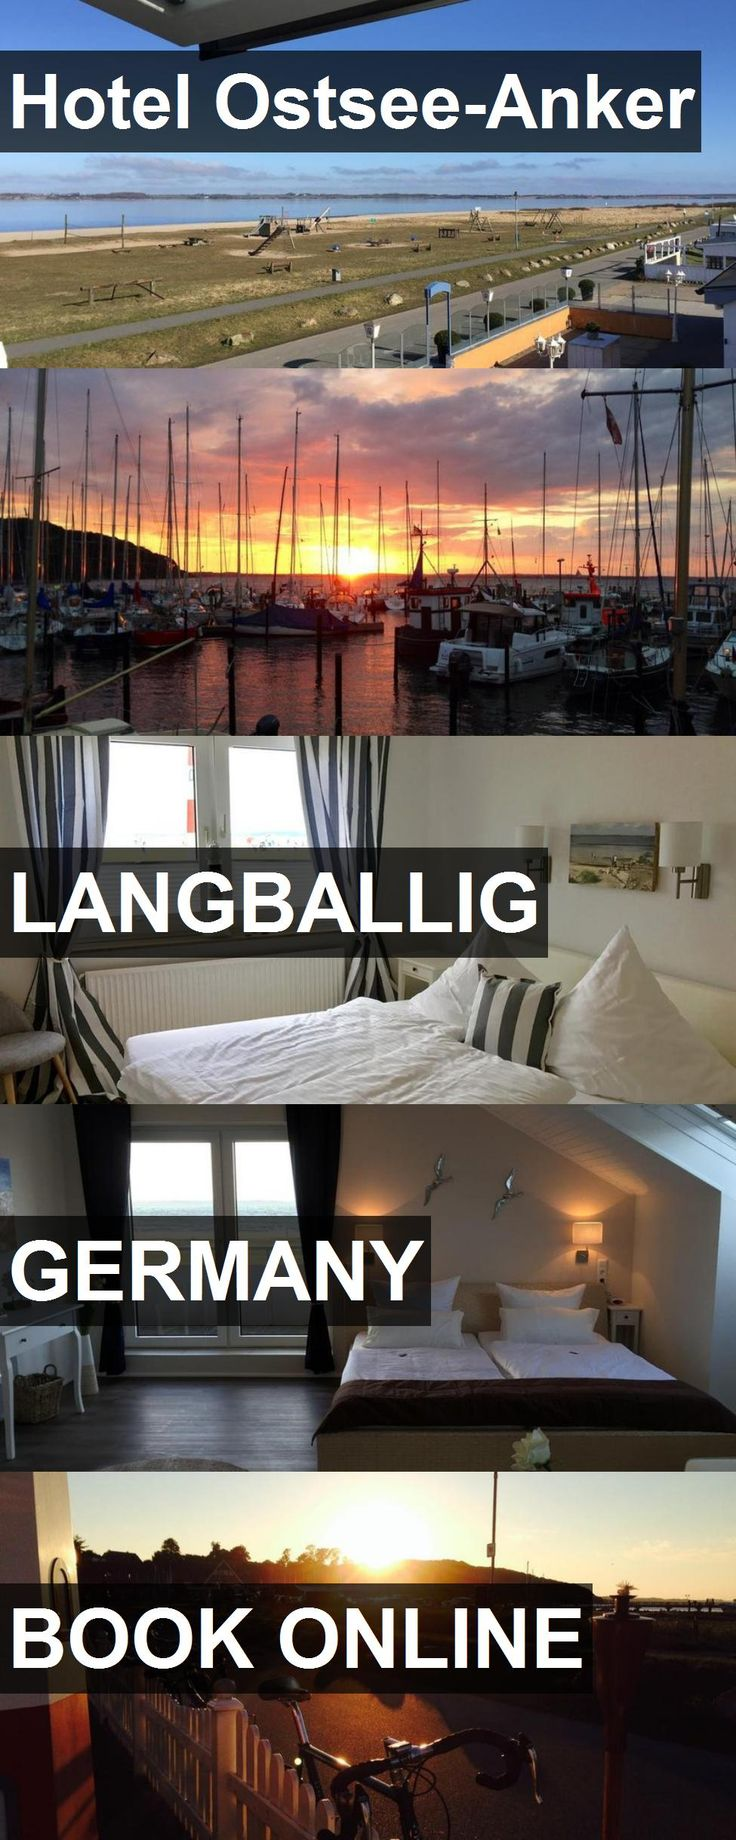 Hotel Ostsee-Anker in Langballig, Germany. For more information, photos, reviews and best prices please follow the link. #Germany #Langballig #travel #vacation #hotel